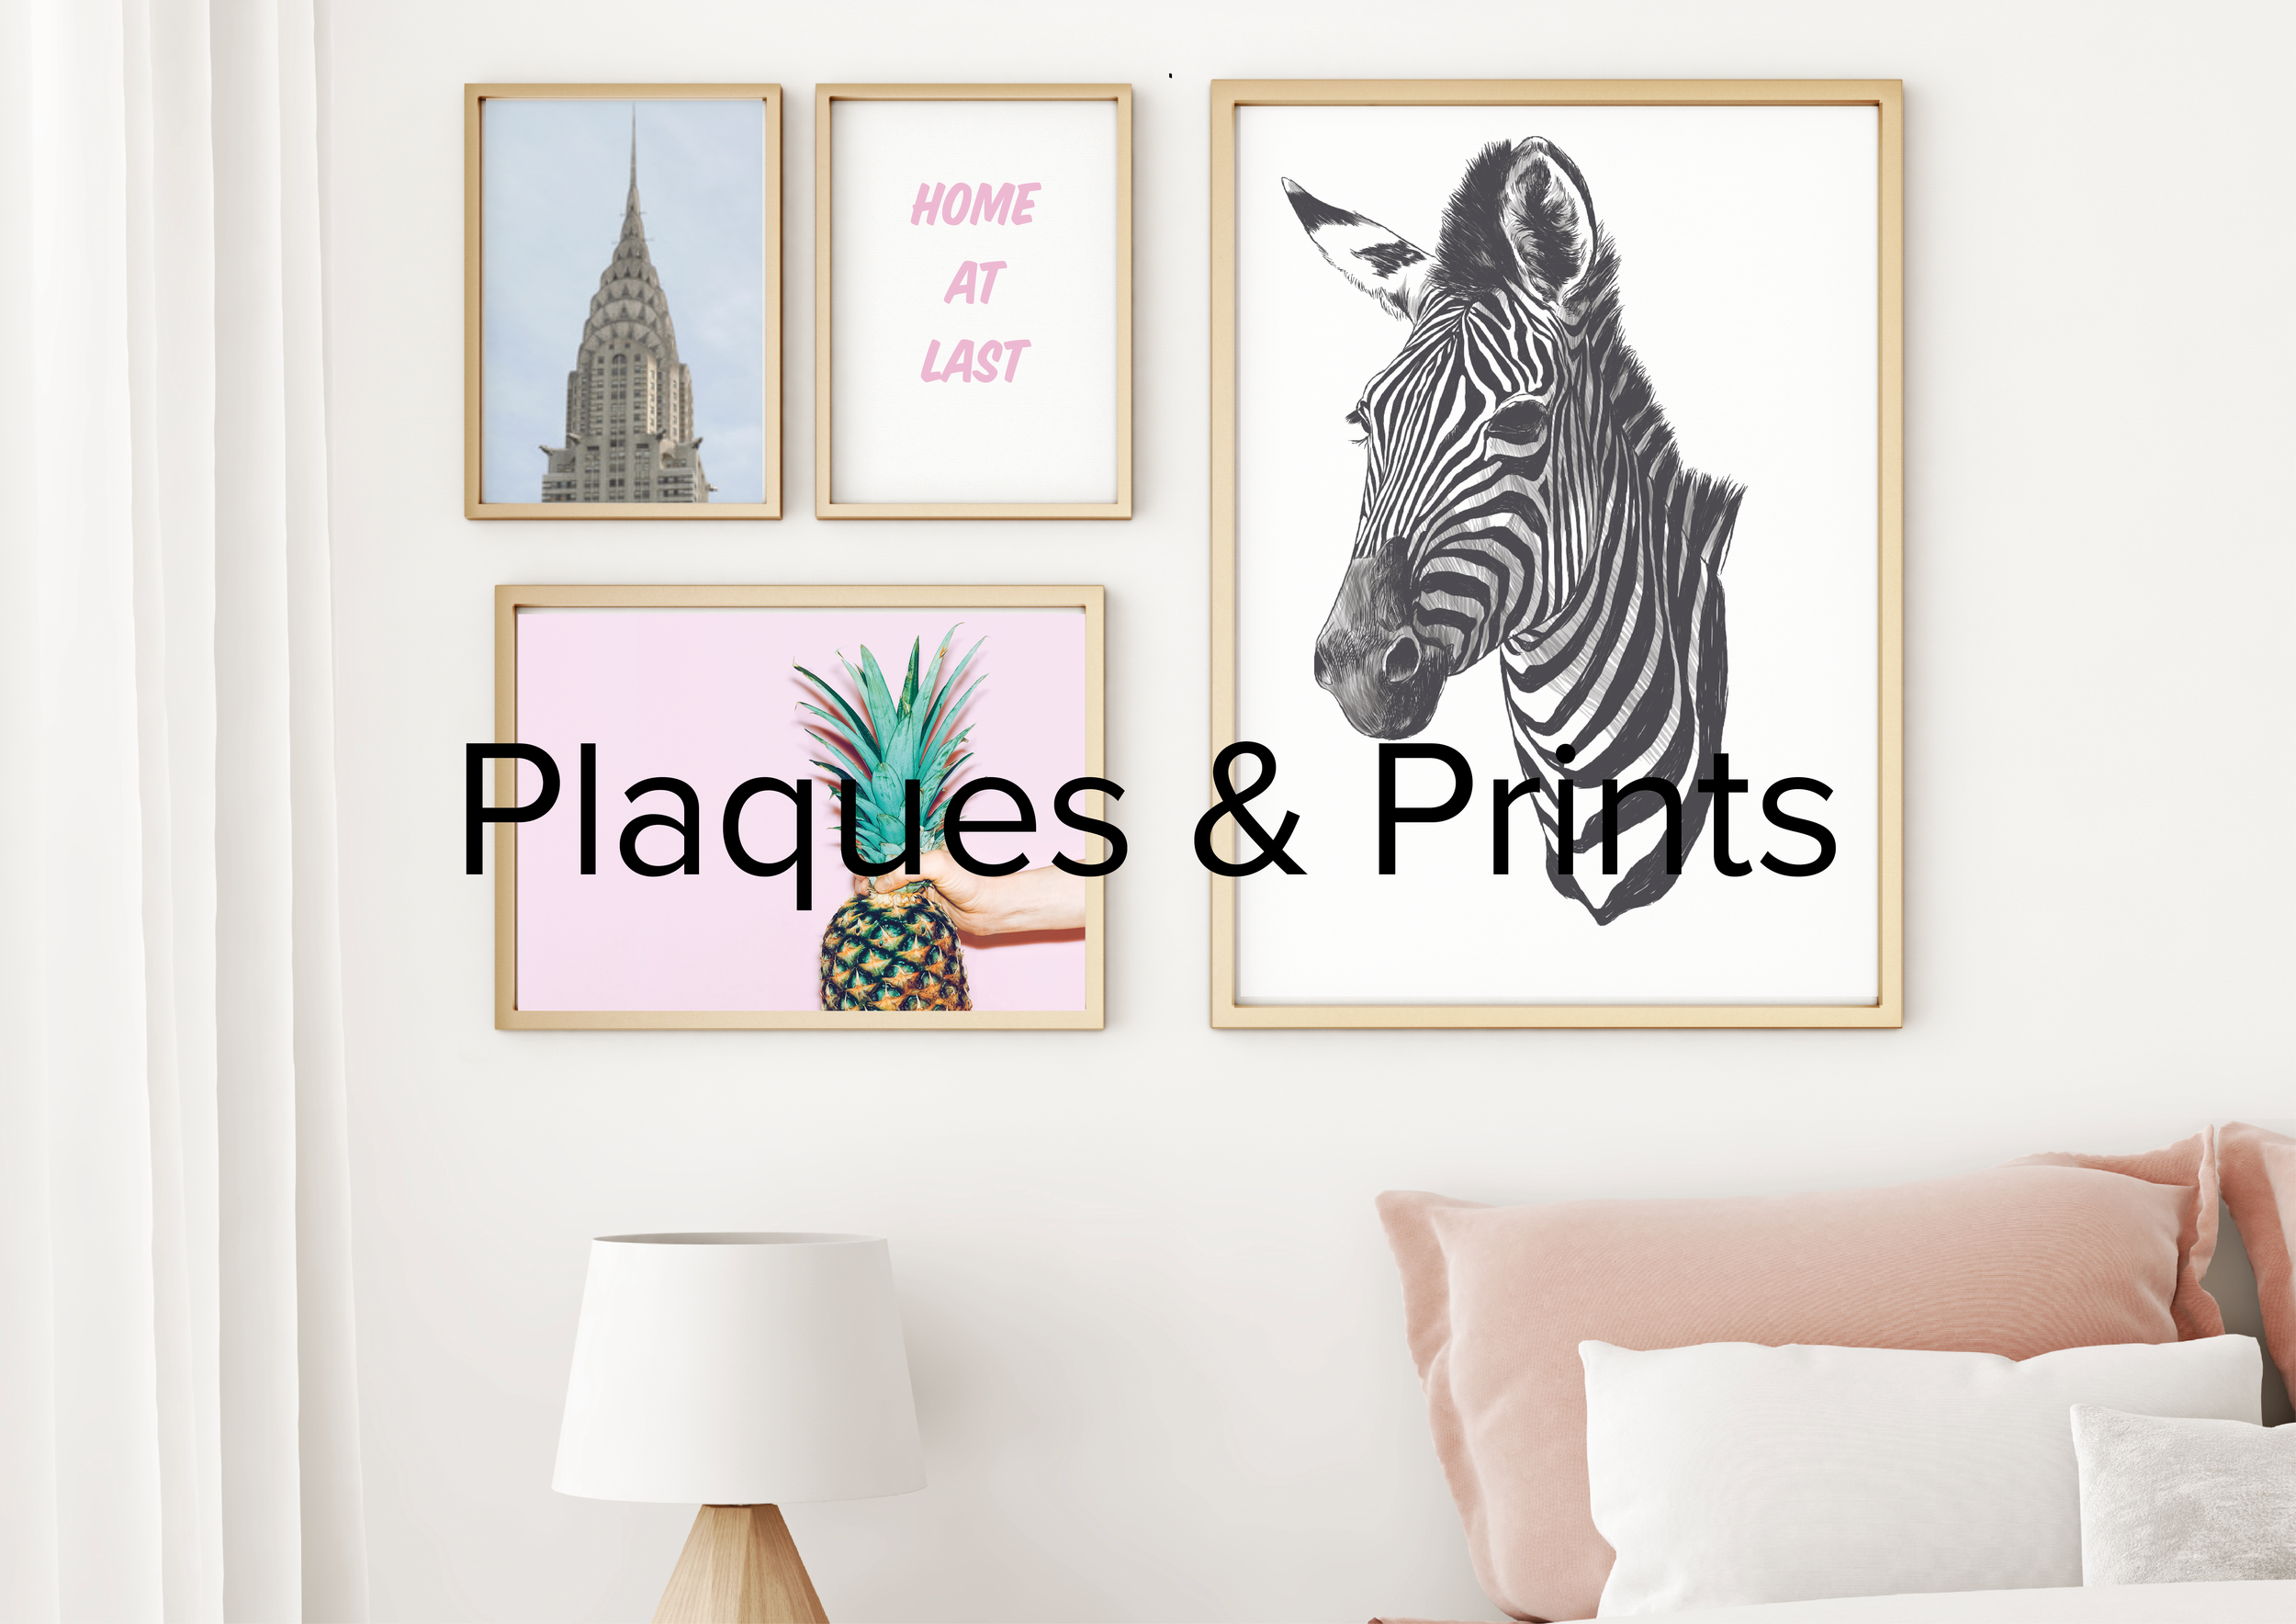 Home at Last Plaques & Prints.png